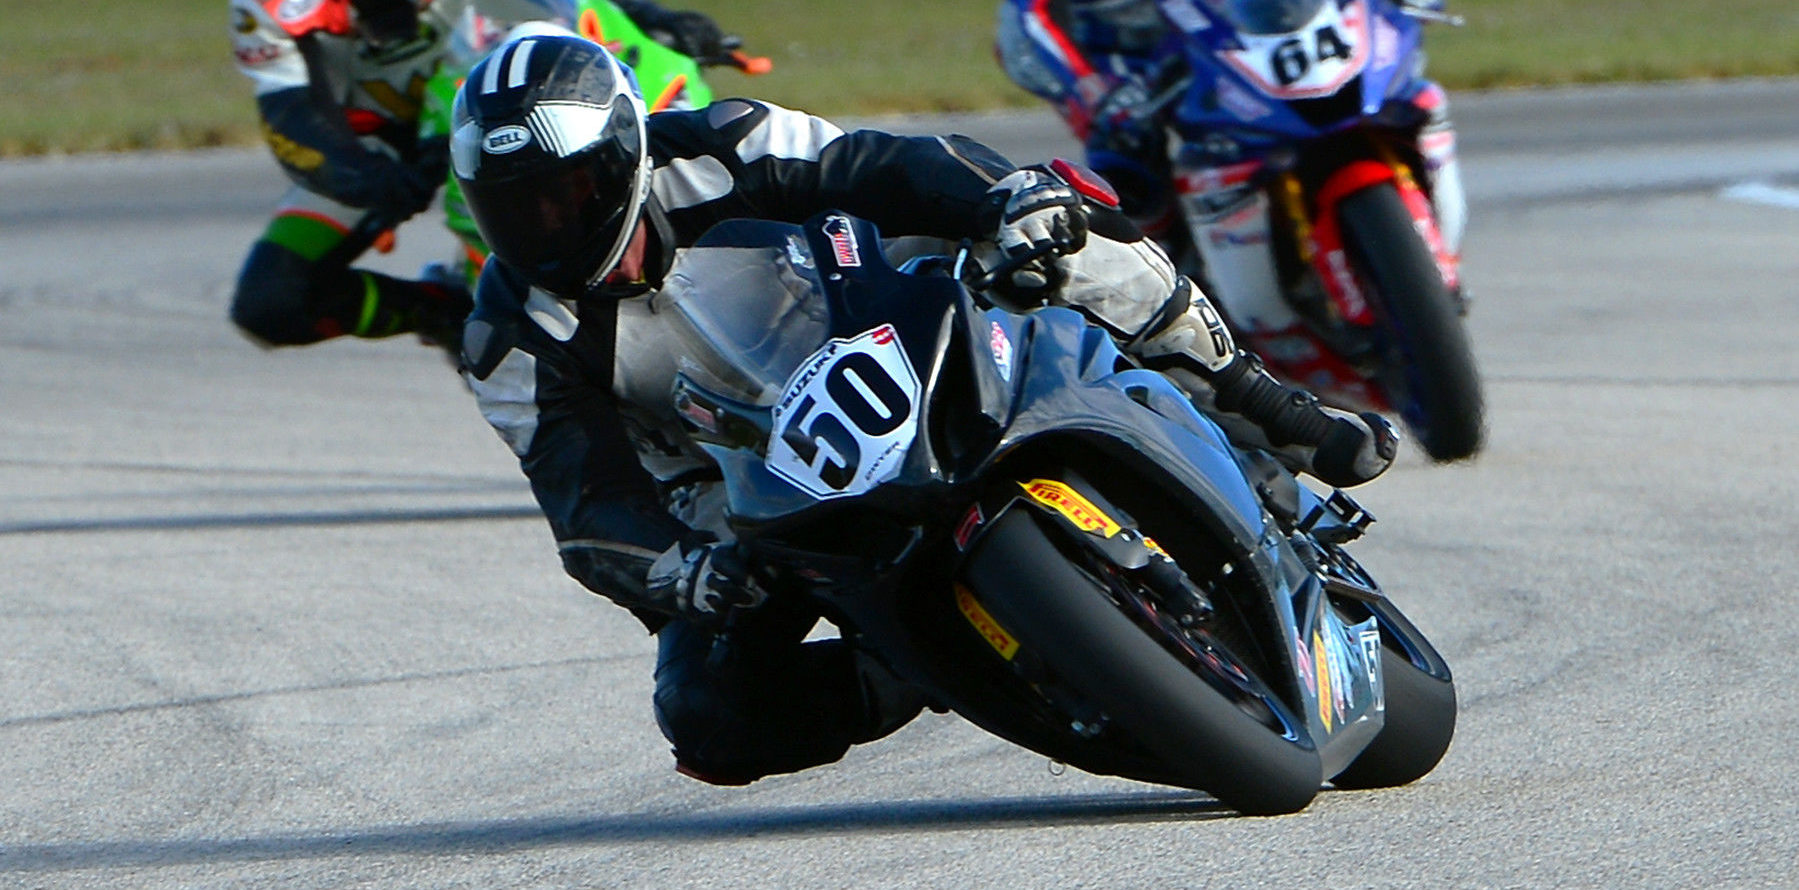 Sean Dwyer (50) leading Eric Wood and Max Angles (64) during the CCS Unlimited Grand Prix race at Homestead-Miami Speedway. Photo by Lisa Theobald, courtesy of ASRA/CCS.